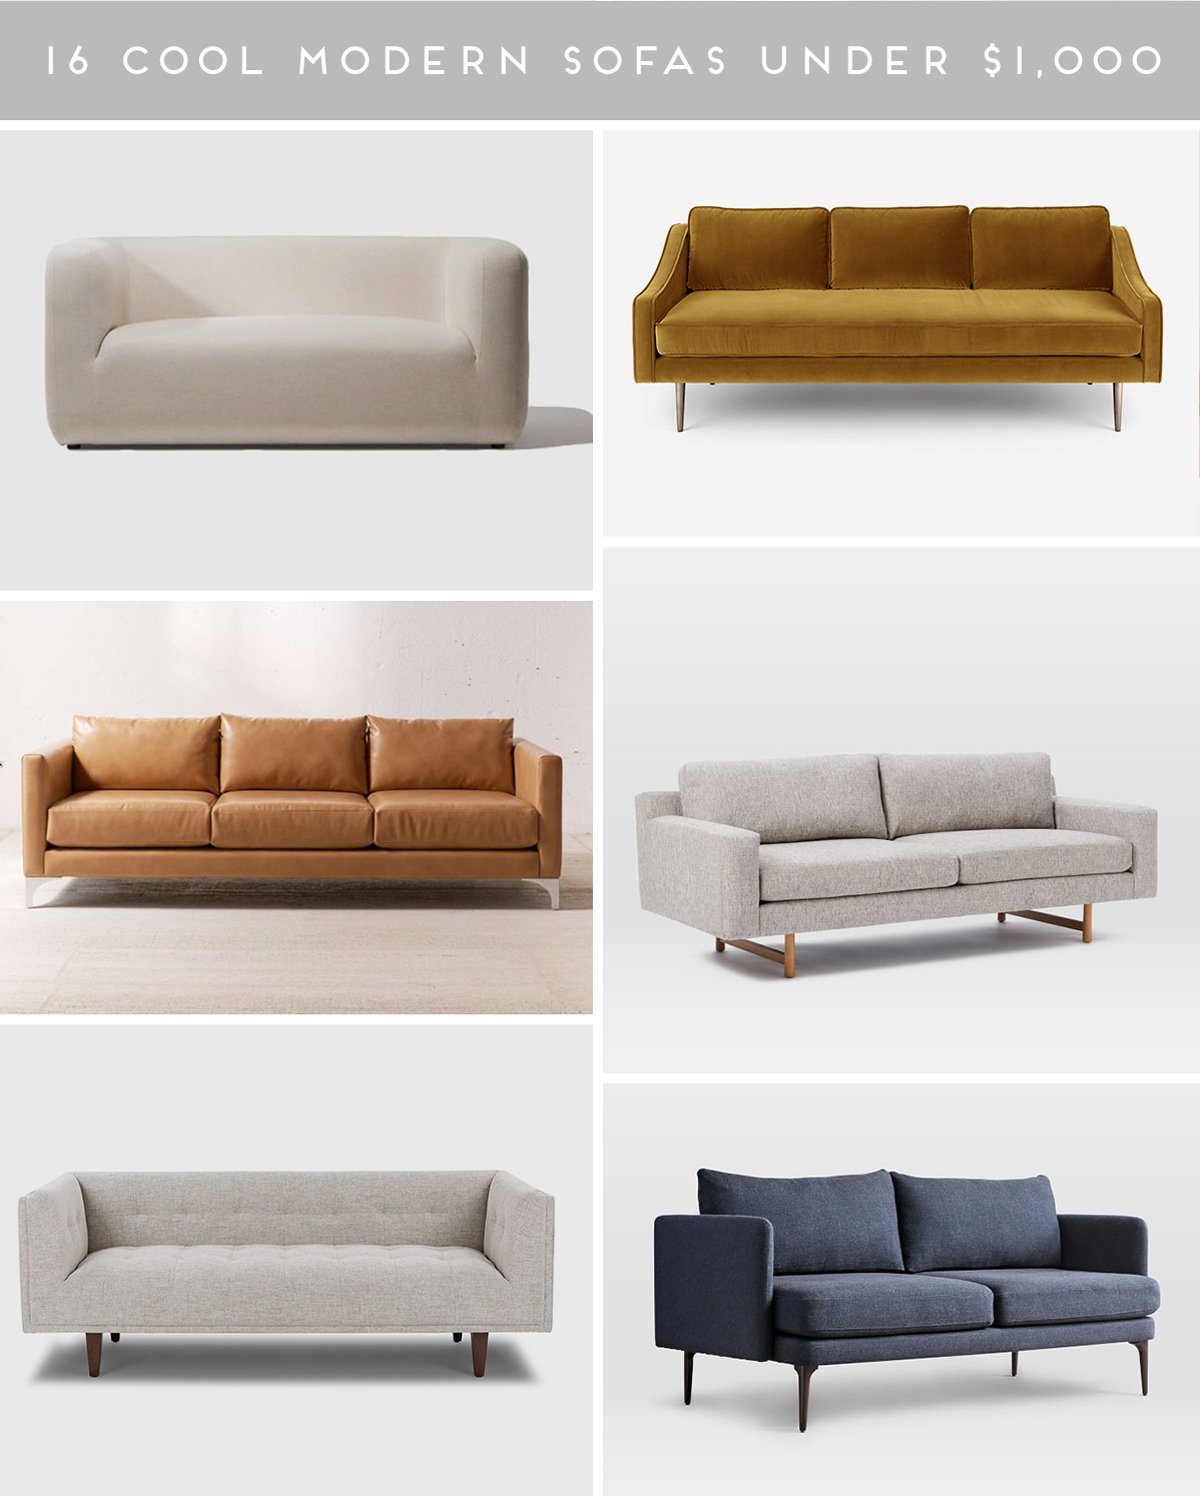 A roundup of the most stylish, modern sofas and coolest couches under $1,000.